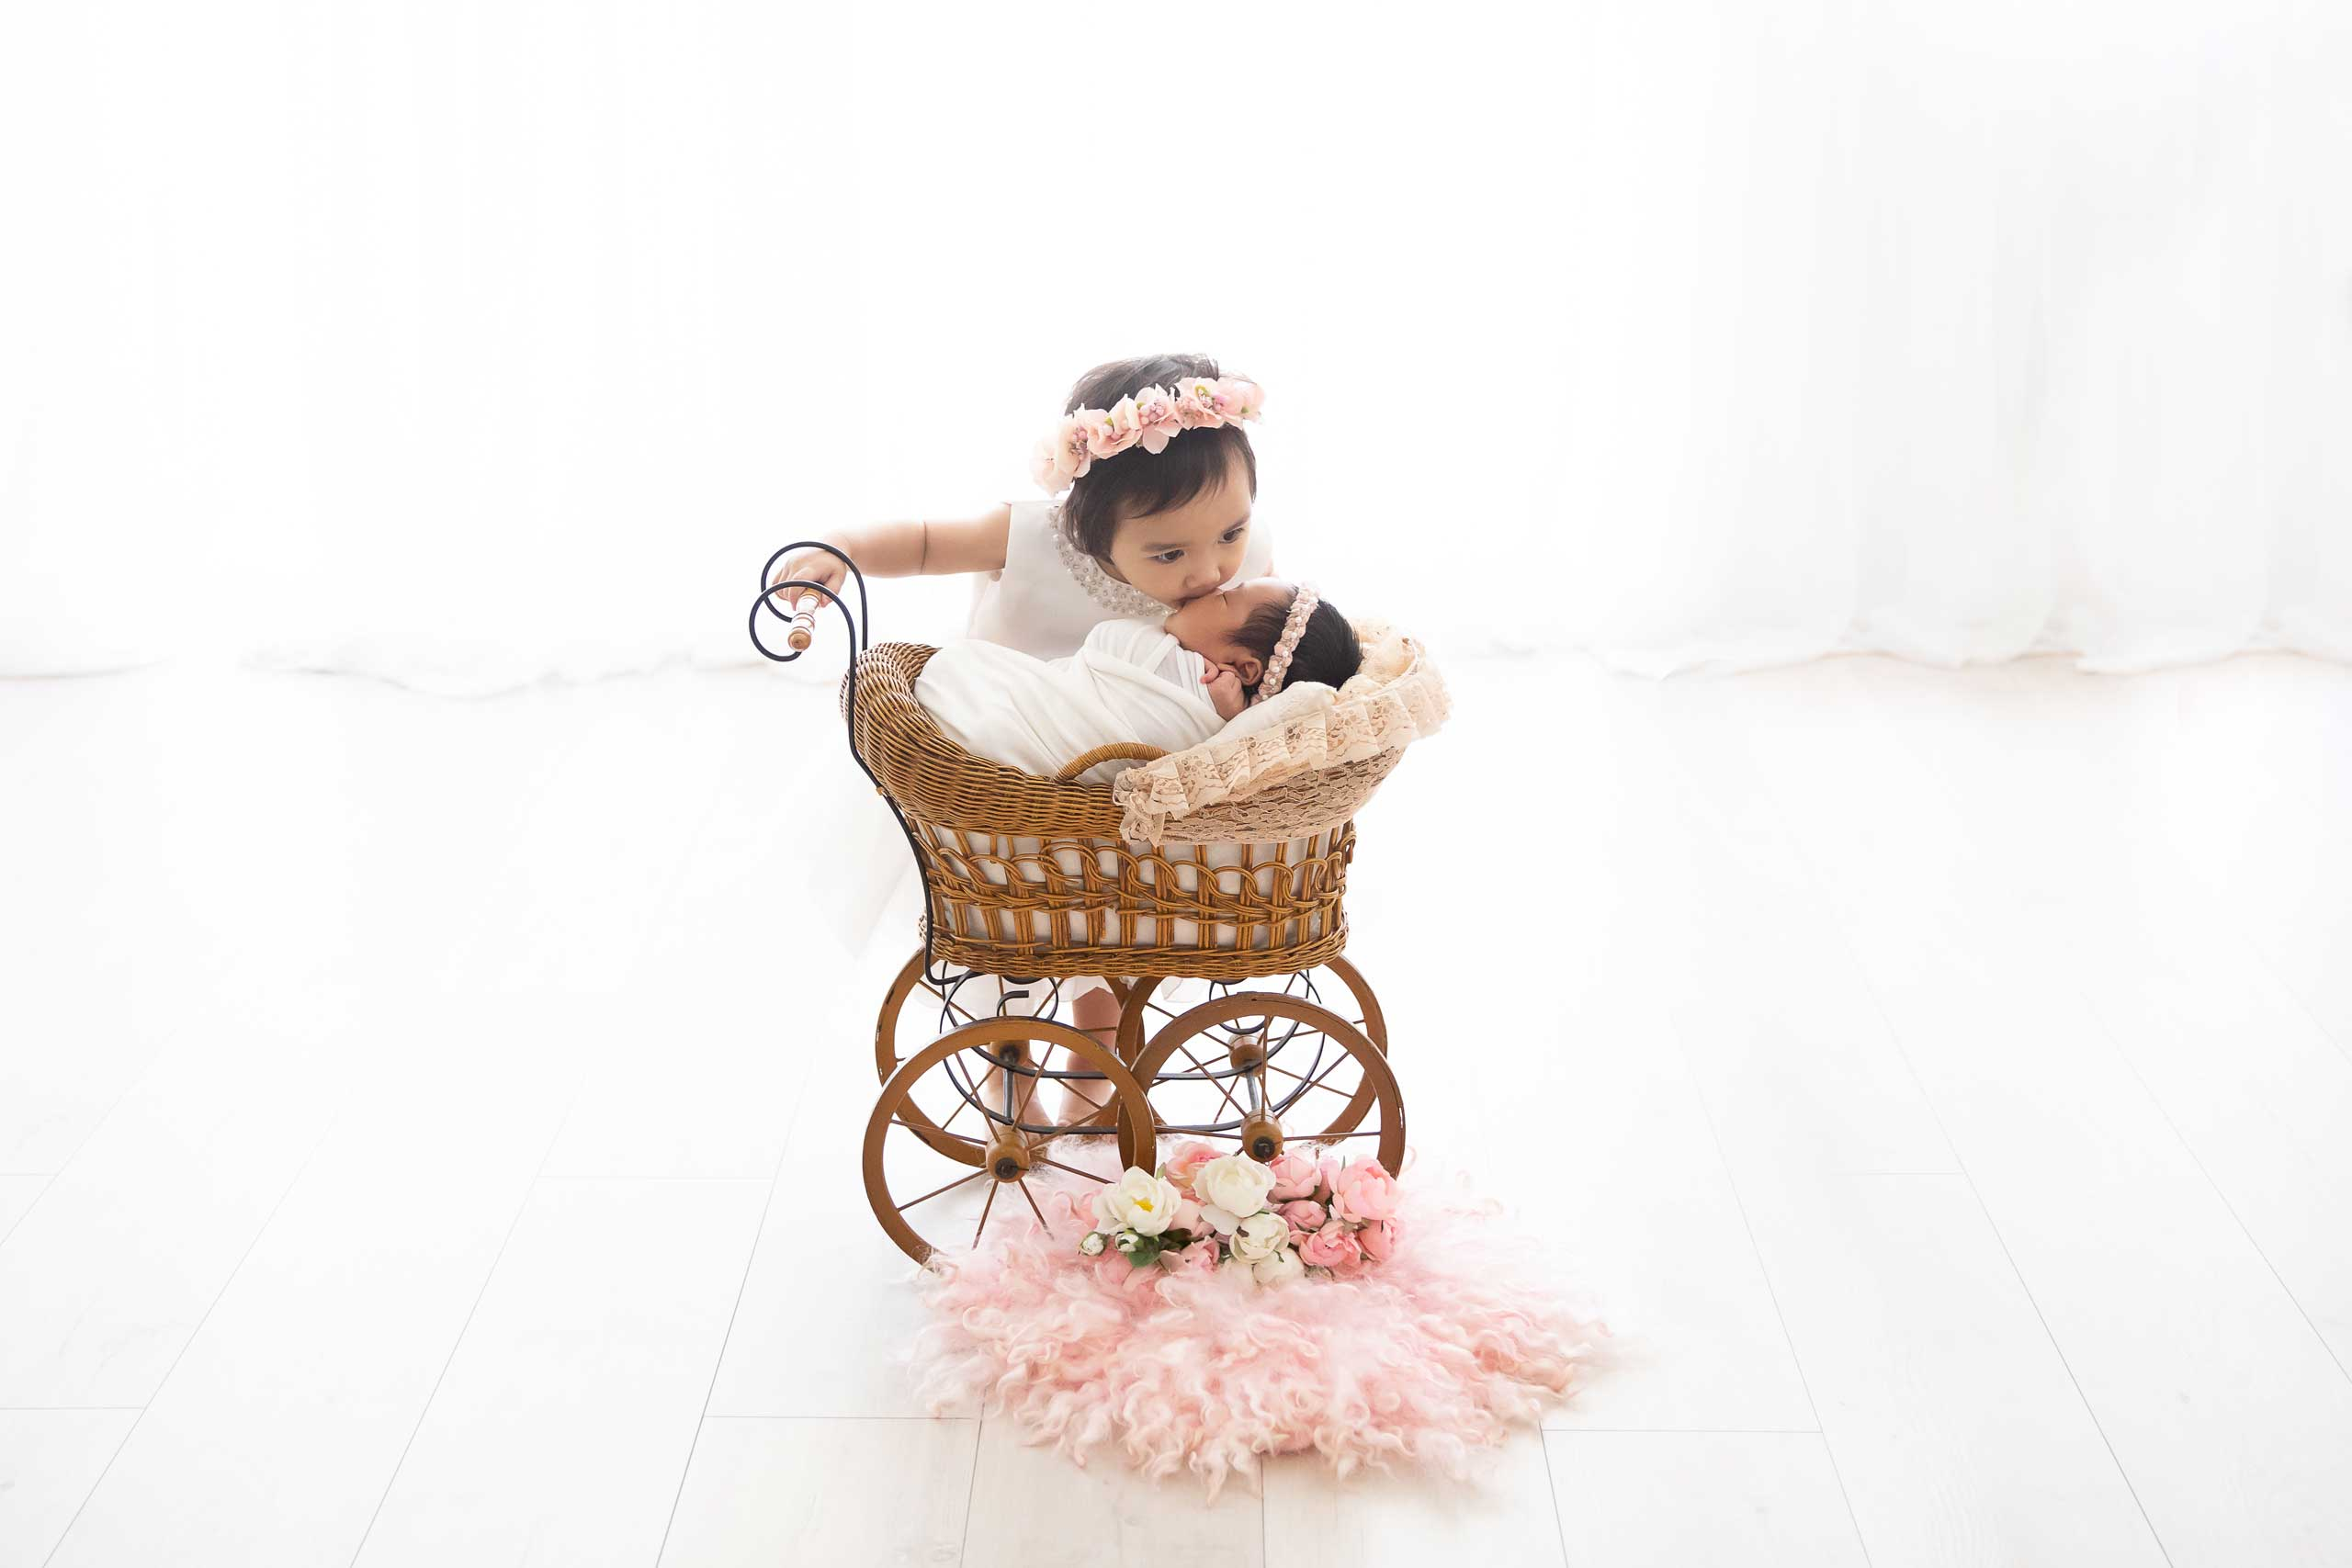 baby newborn photograph taken in Los Angeles by Ramina Magid Photography